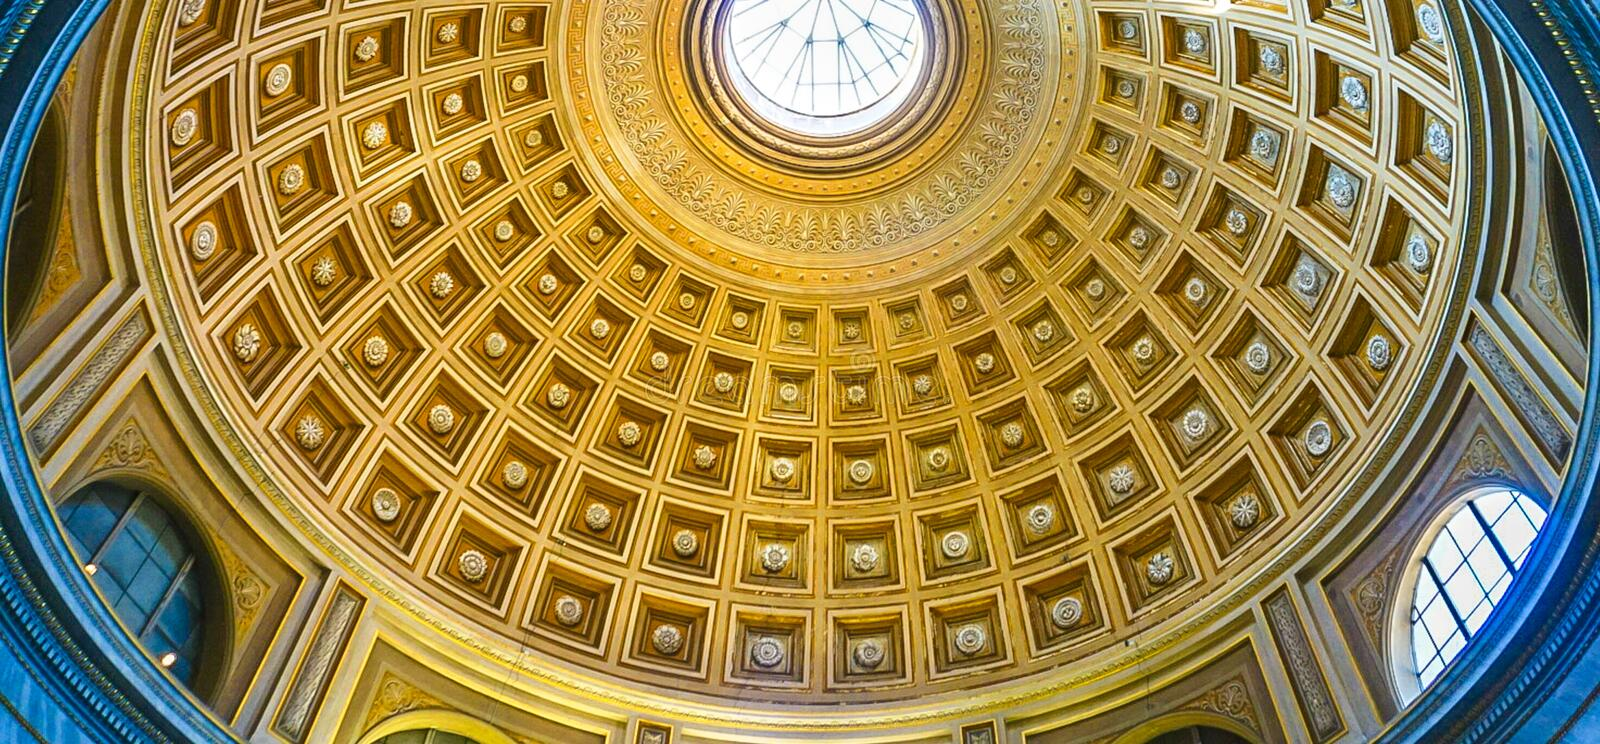 VATICAN CITY, ITALY: OCTOBER 11, 2017: Ornate dome ceiling in. The rotunda of the Vatican Museum stock photo